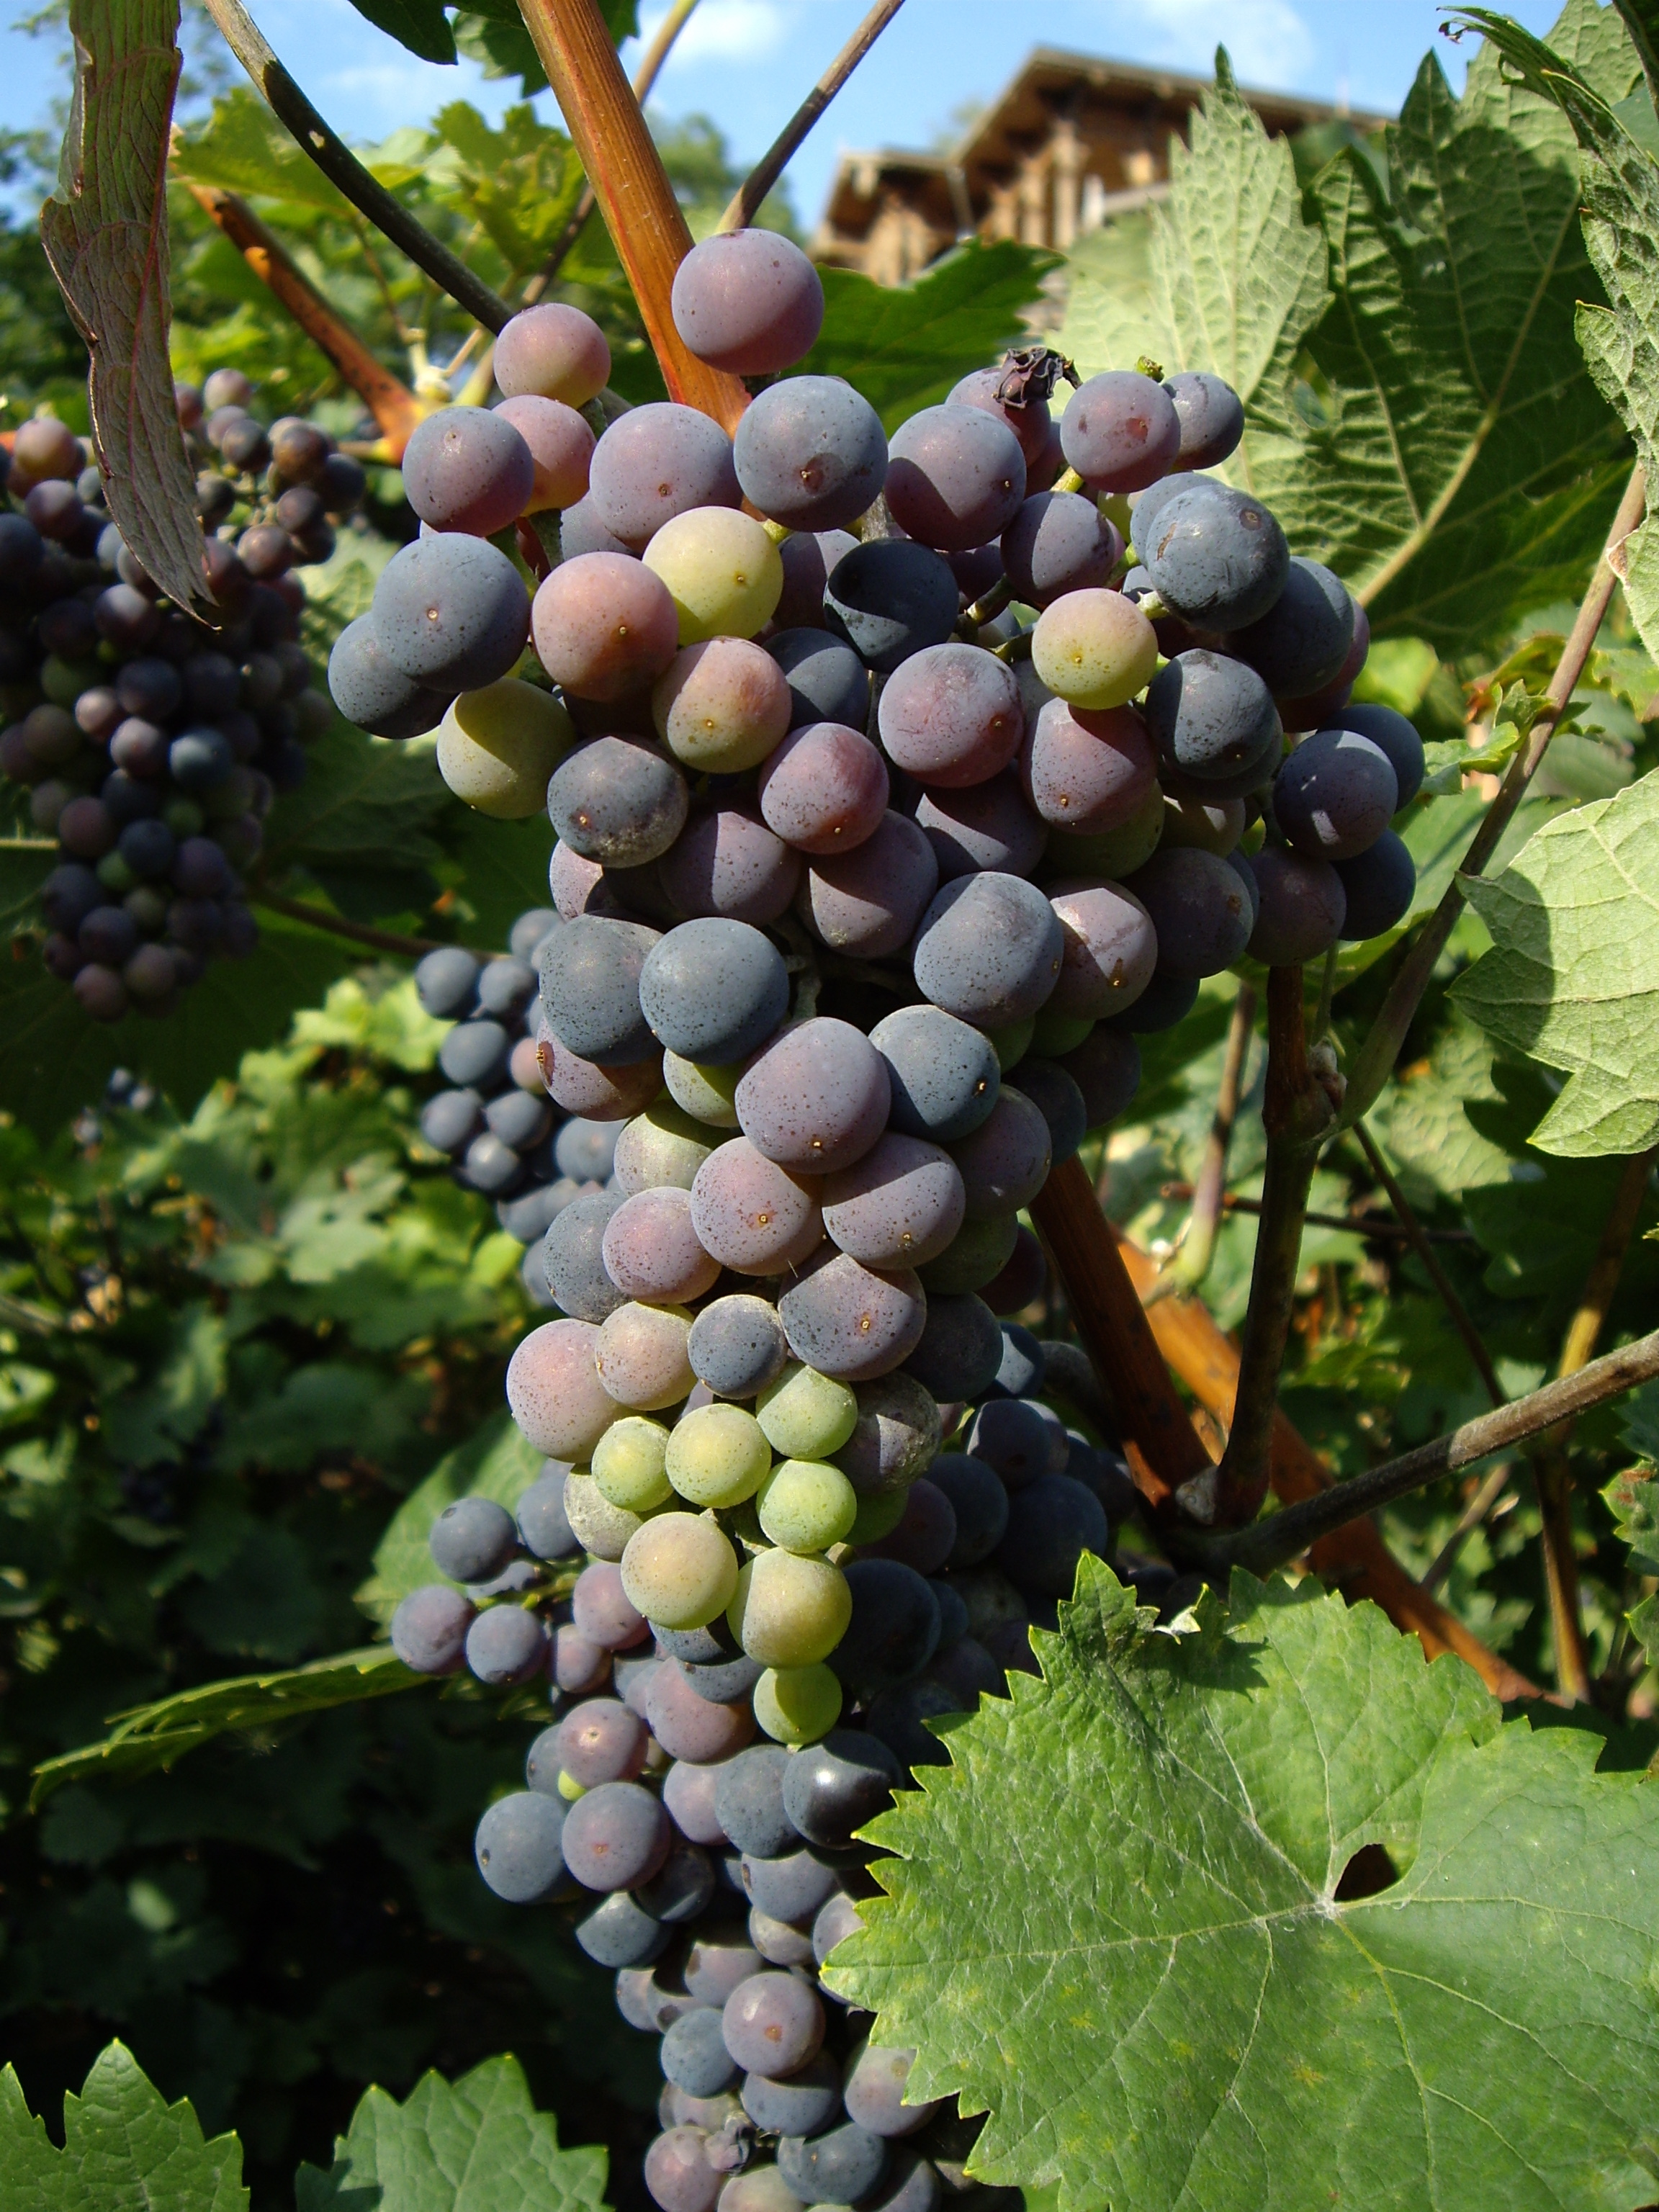 Up close and personal with the grapes of Vinicni Altan.